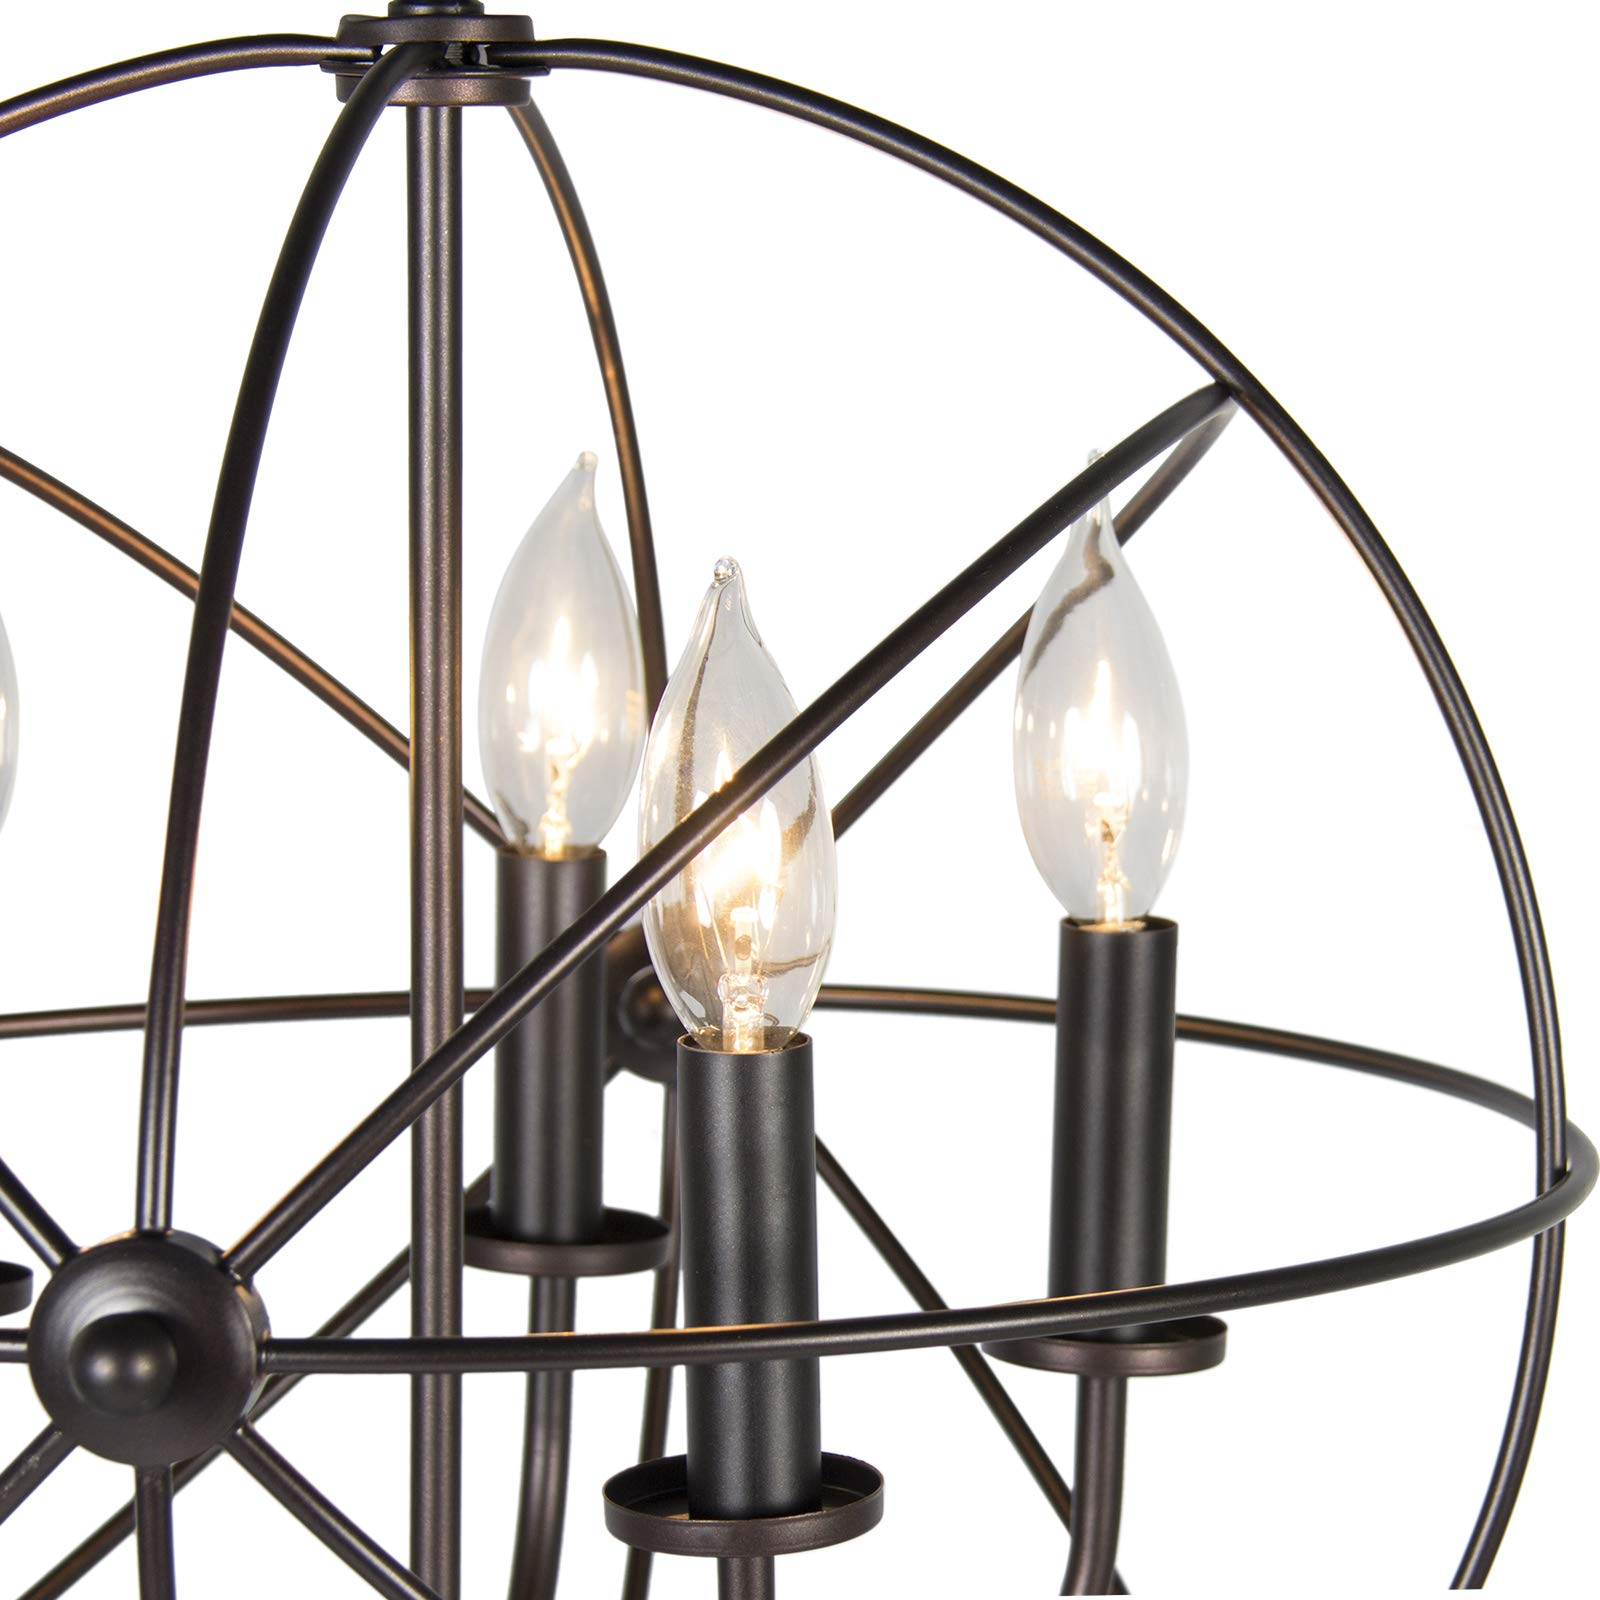 Industrial Vintage Lighting Ceiling Chandelier 5 Lights Metal Hanging Fixture by Best Choice Products (Image #3)